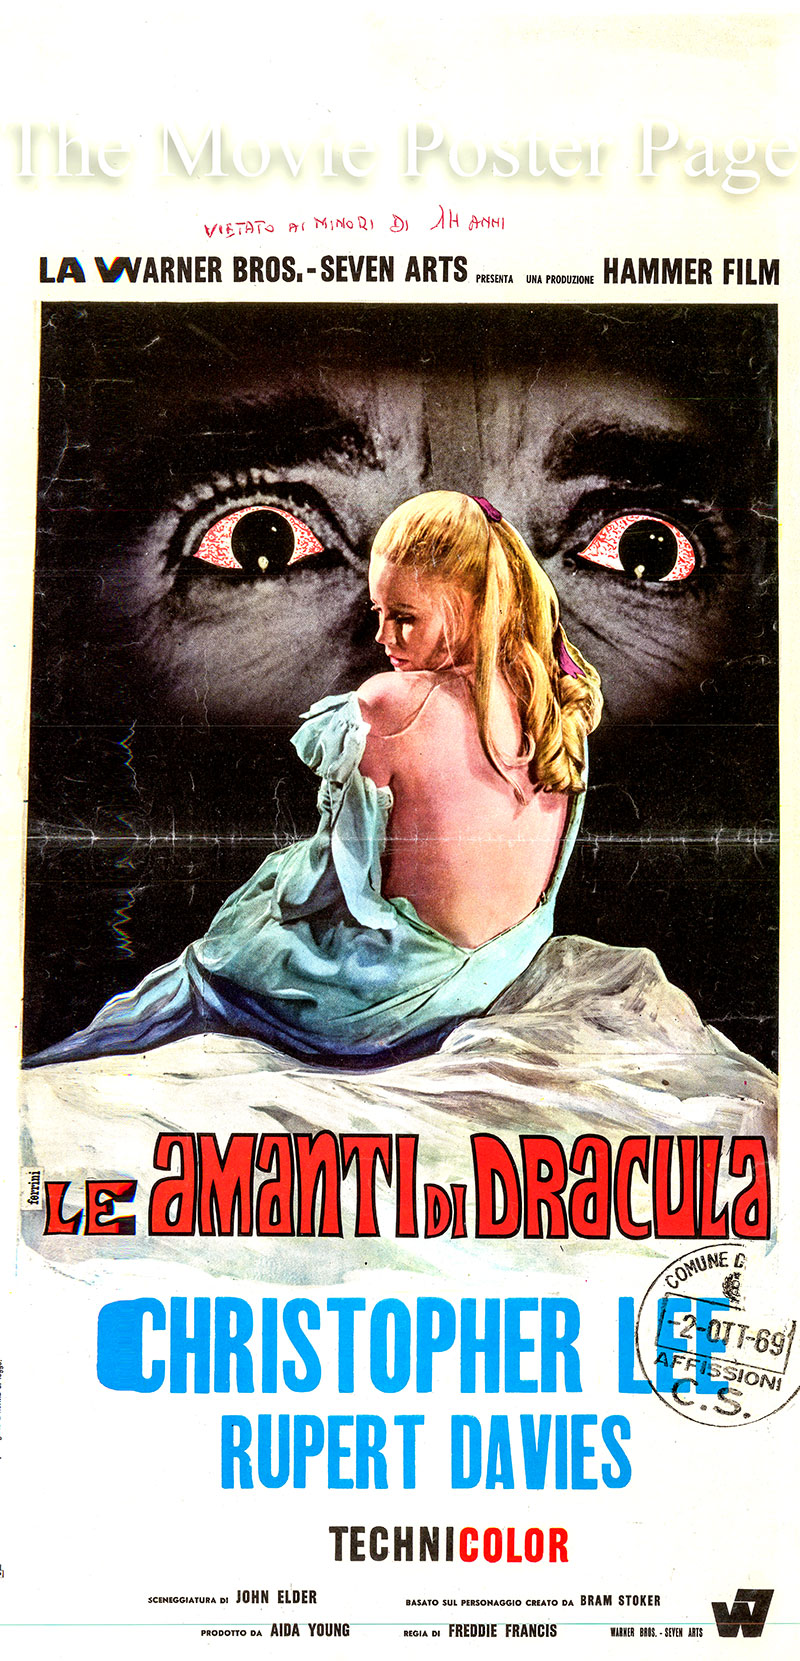 Pictured is an Italian locandina promotional poster for the 1968 Freddie Francis film Dracula Has Risen from the Grave starring Christopher Lee as Dracula.